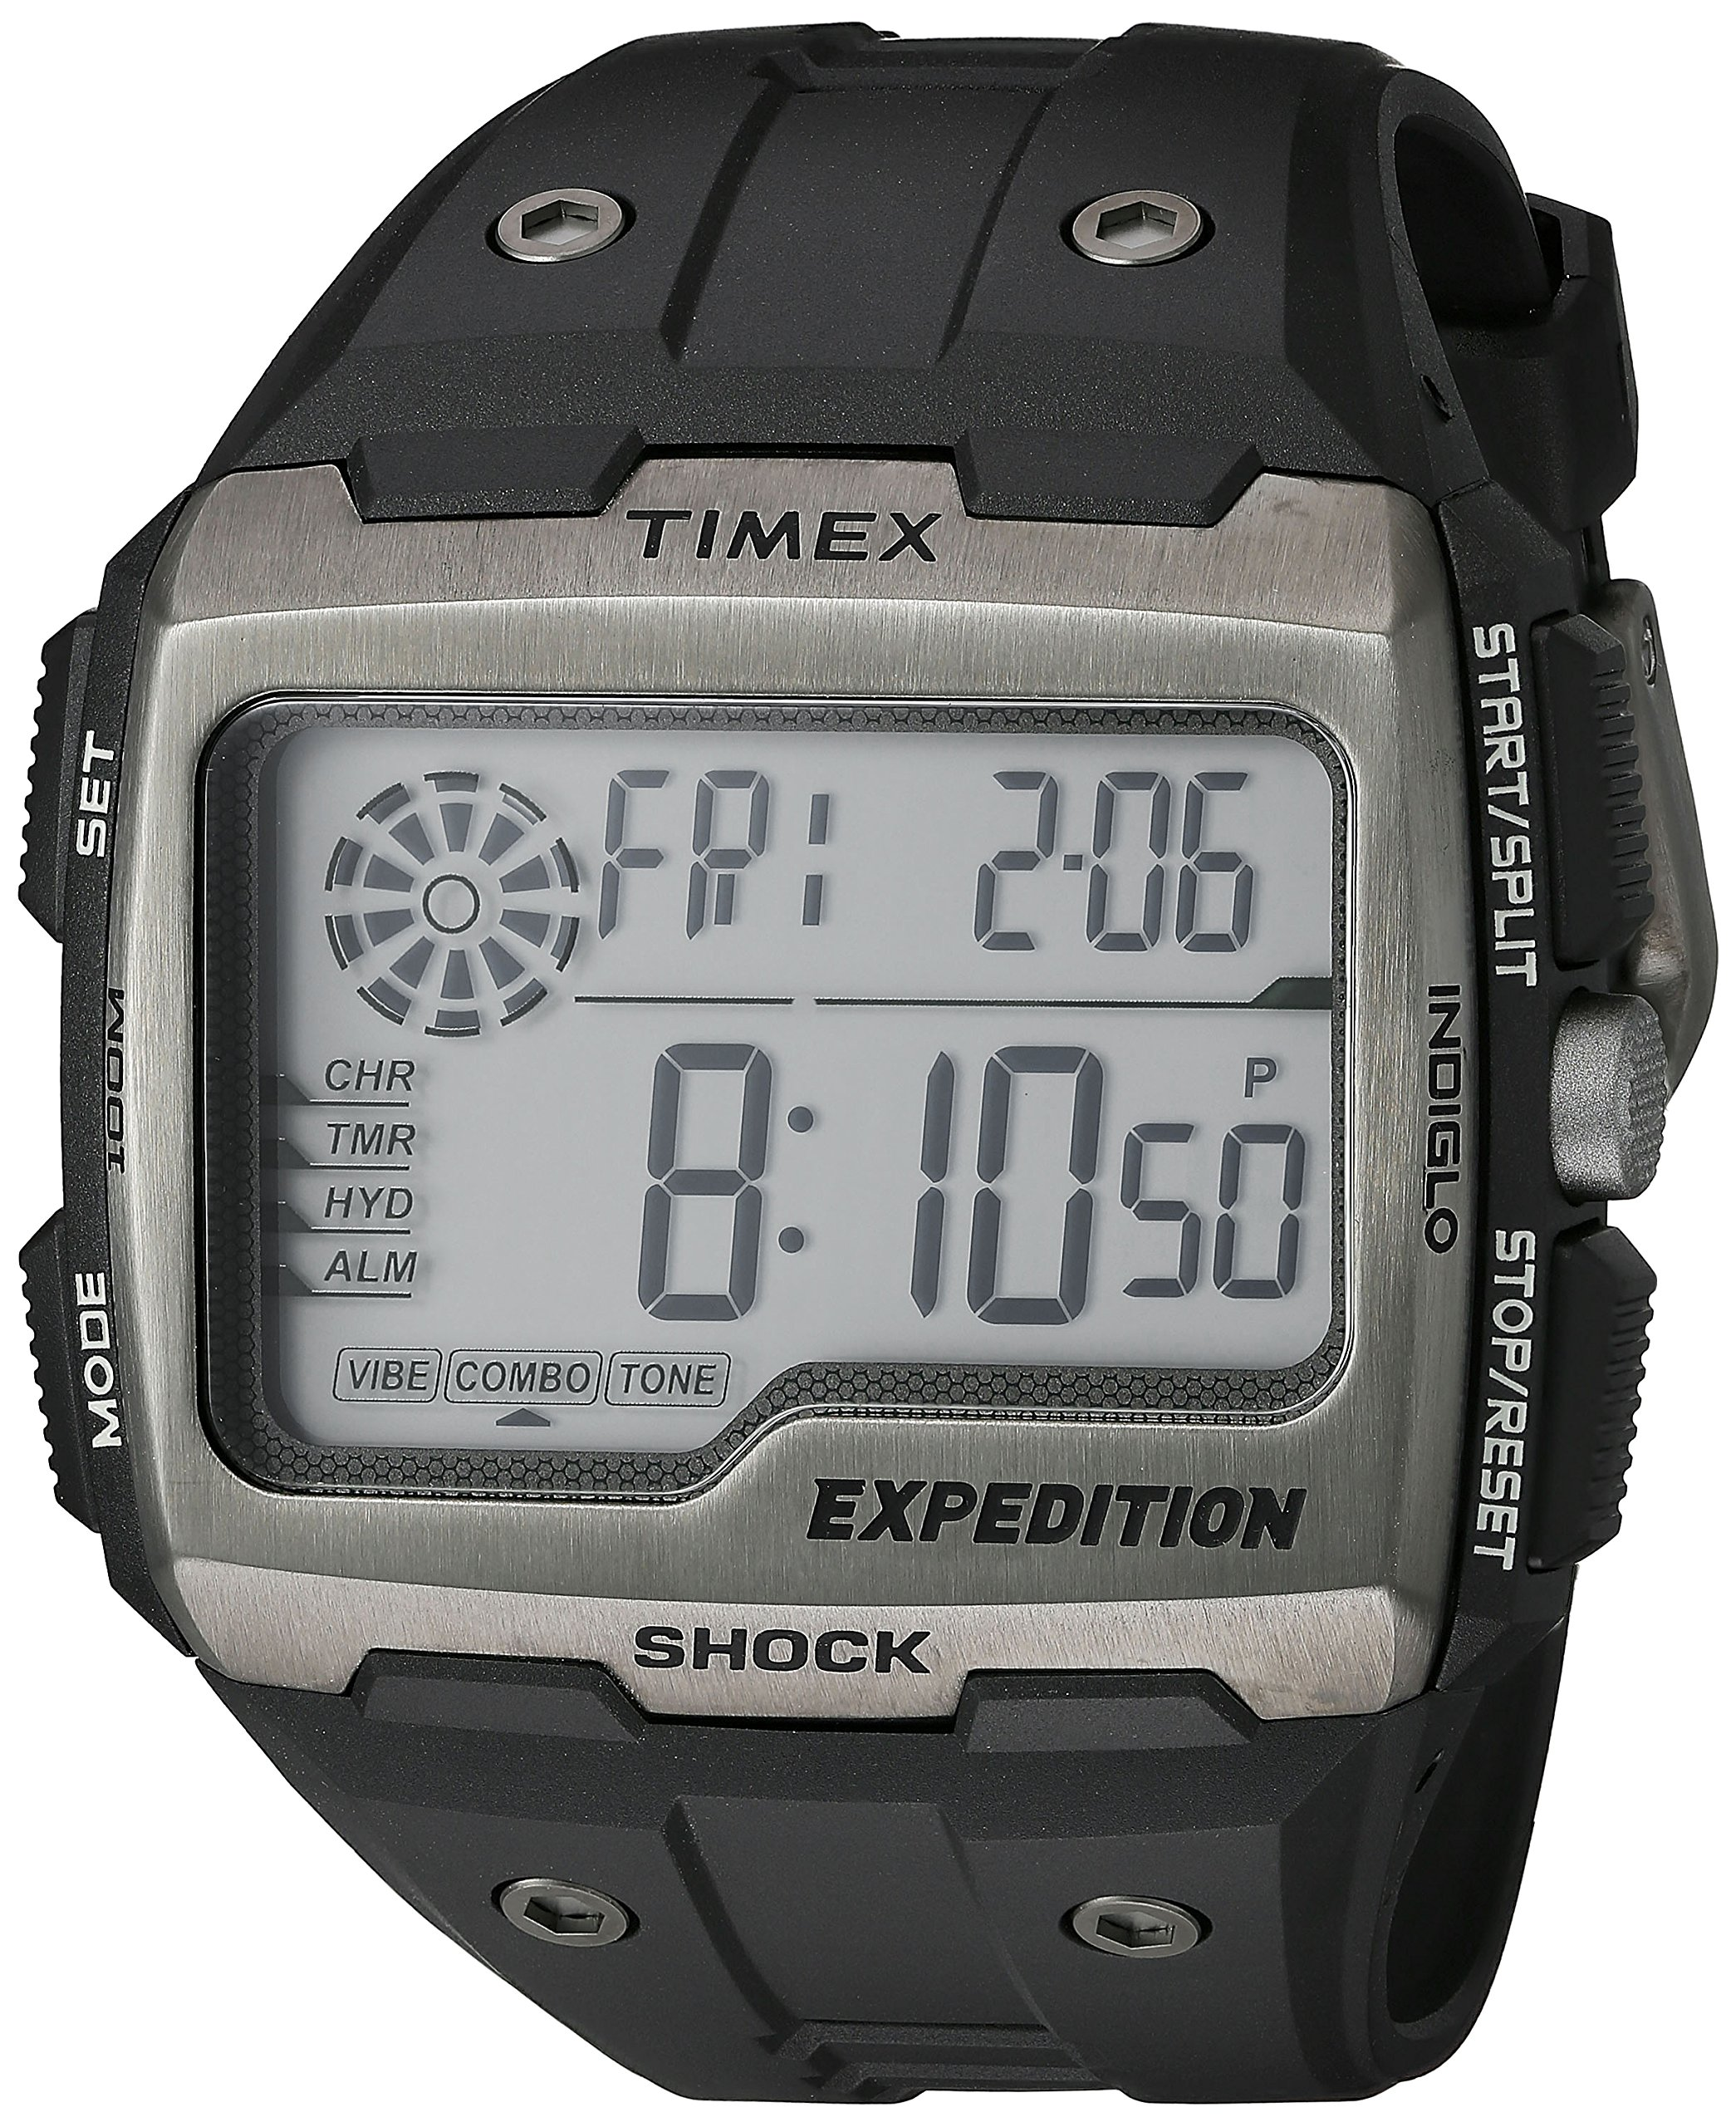 Timex Men's TW4B02500 Expedition Grid Shock Black Resin Strap Watch by Timex (Image #4)